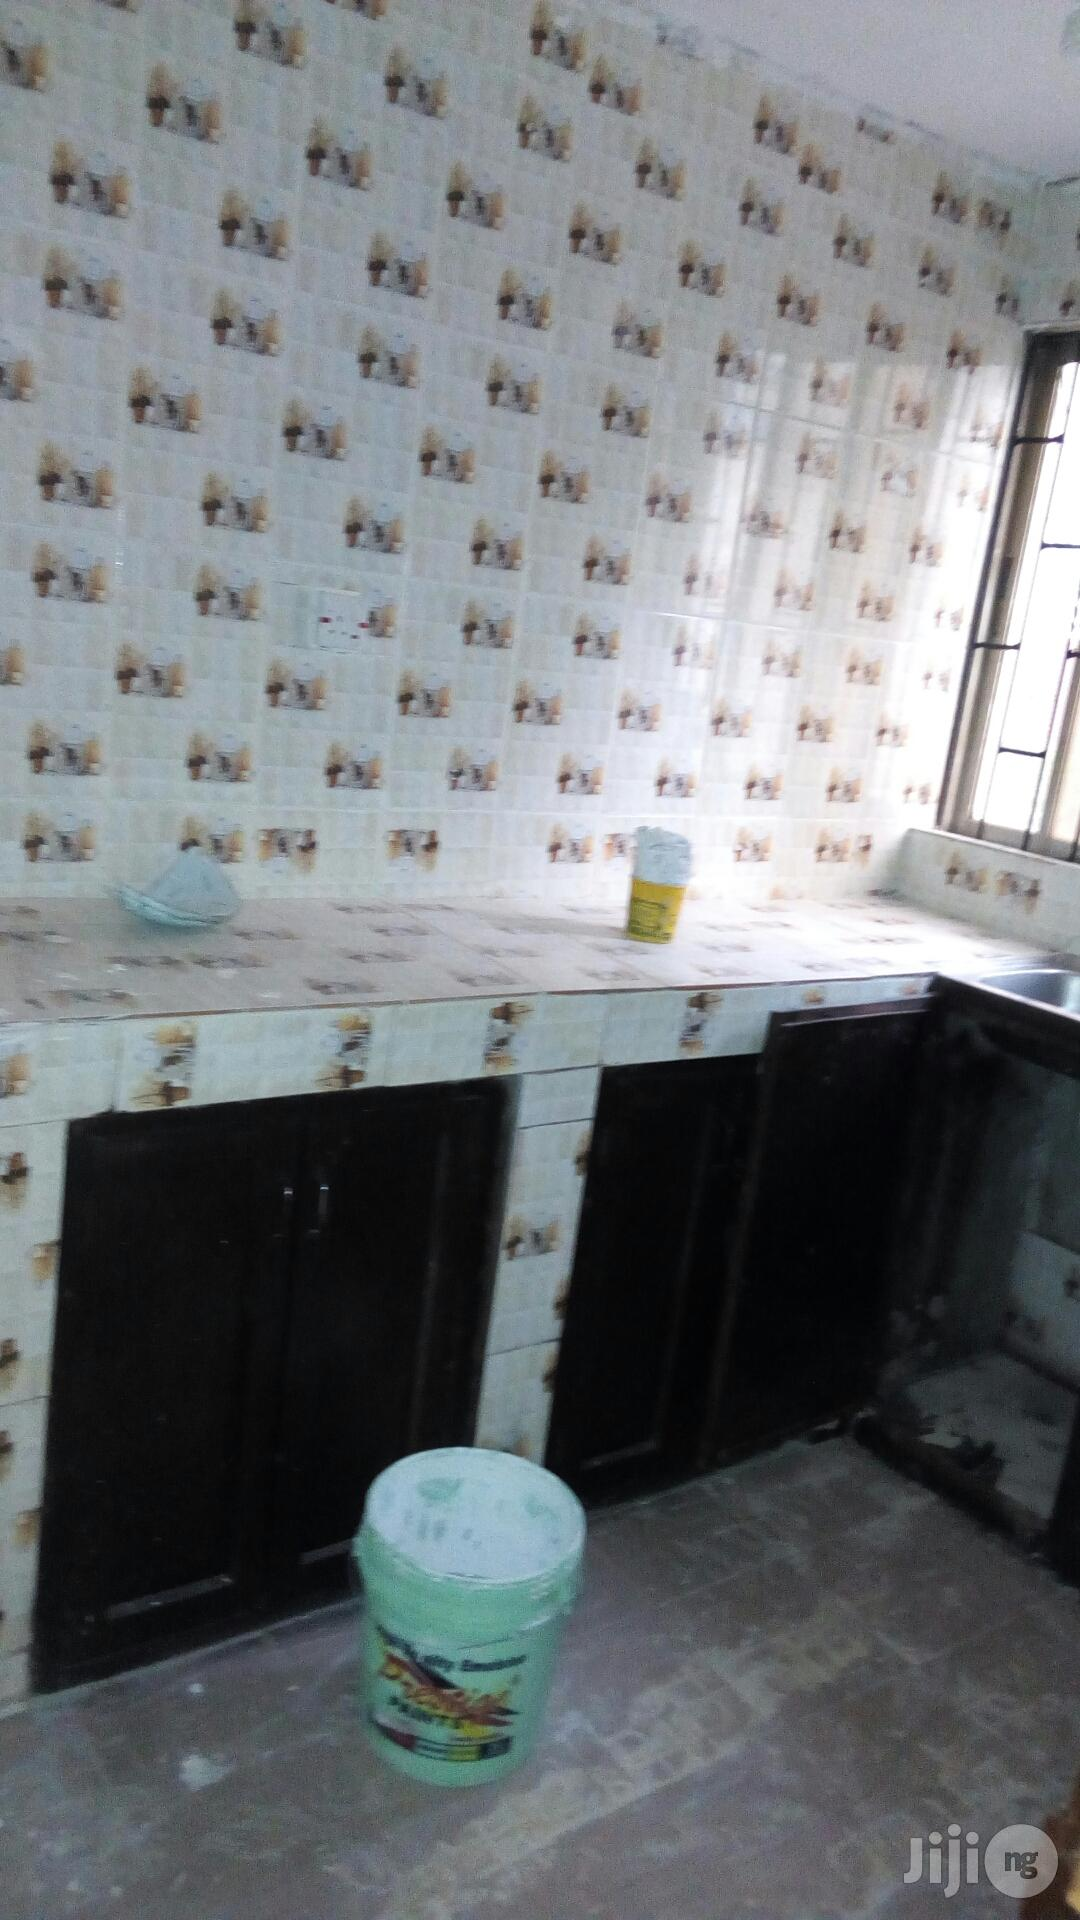 Clean & Spacious 2 Bedroom Flat At New Oko Oba For Rent. | Houses & Apartments For Rent for sale in Agege, Lagos State, Nigeria